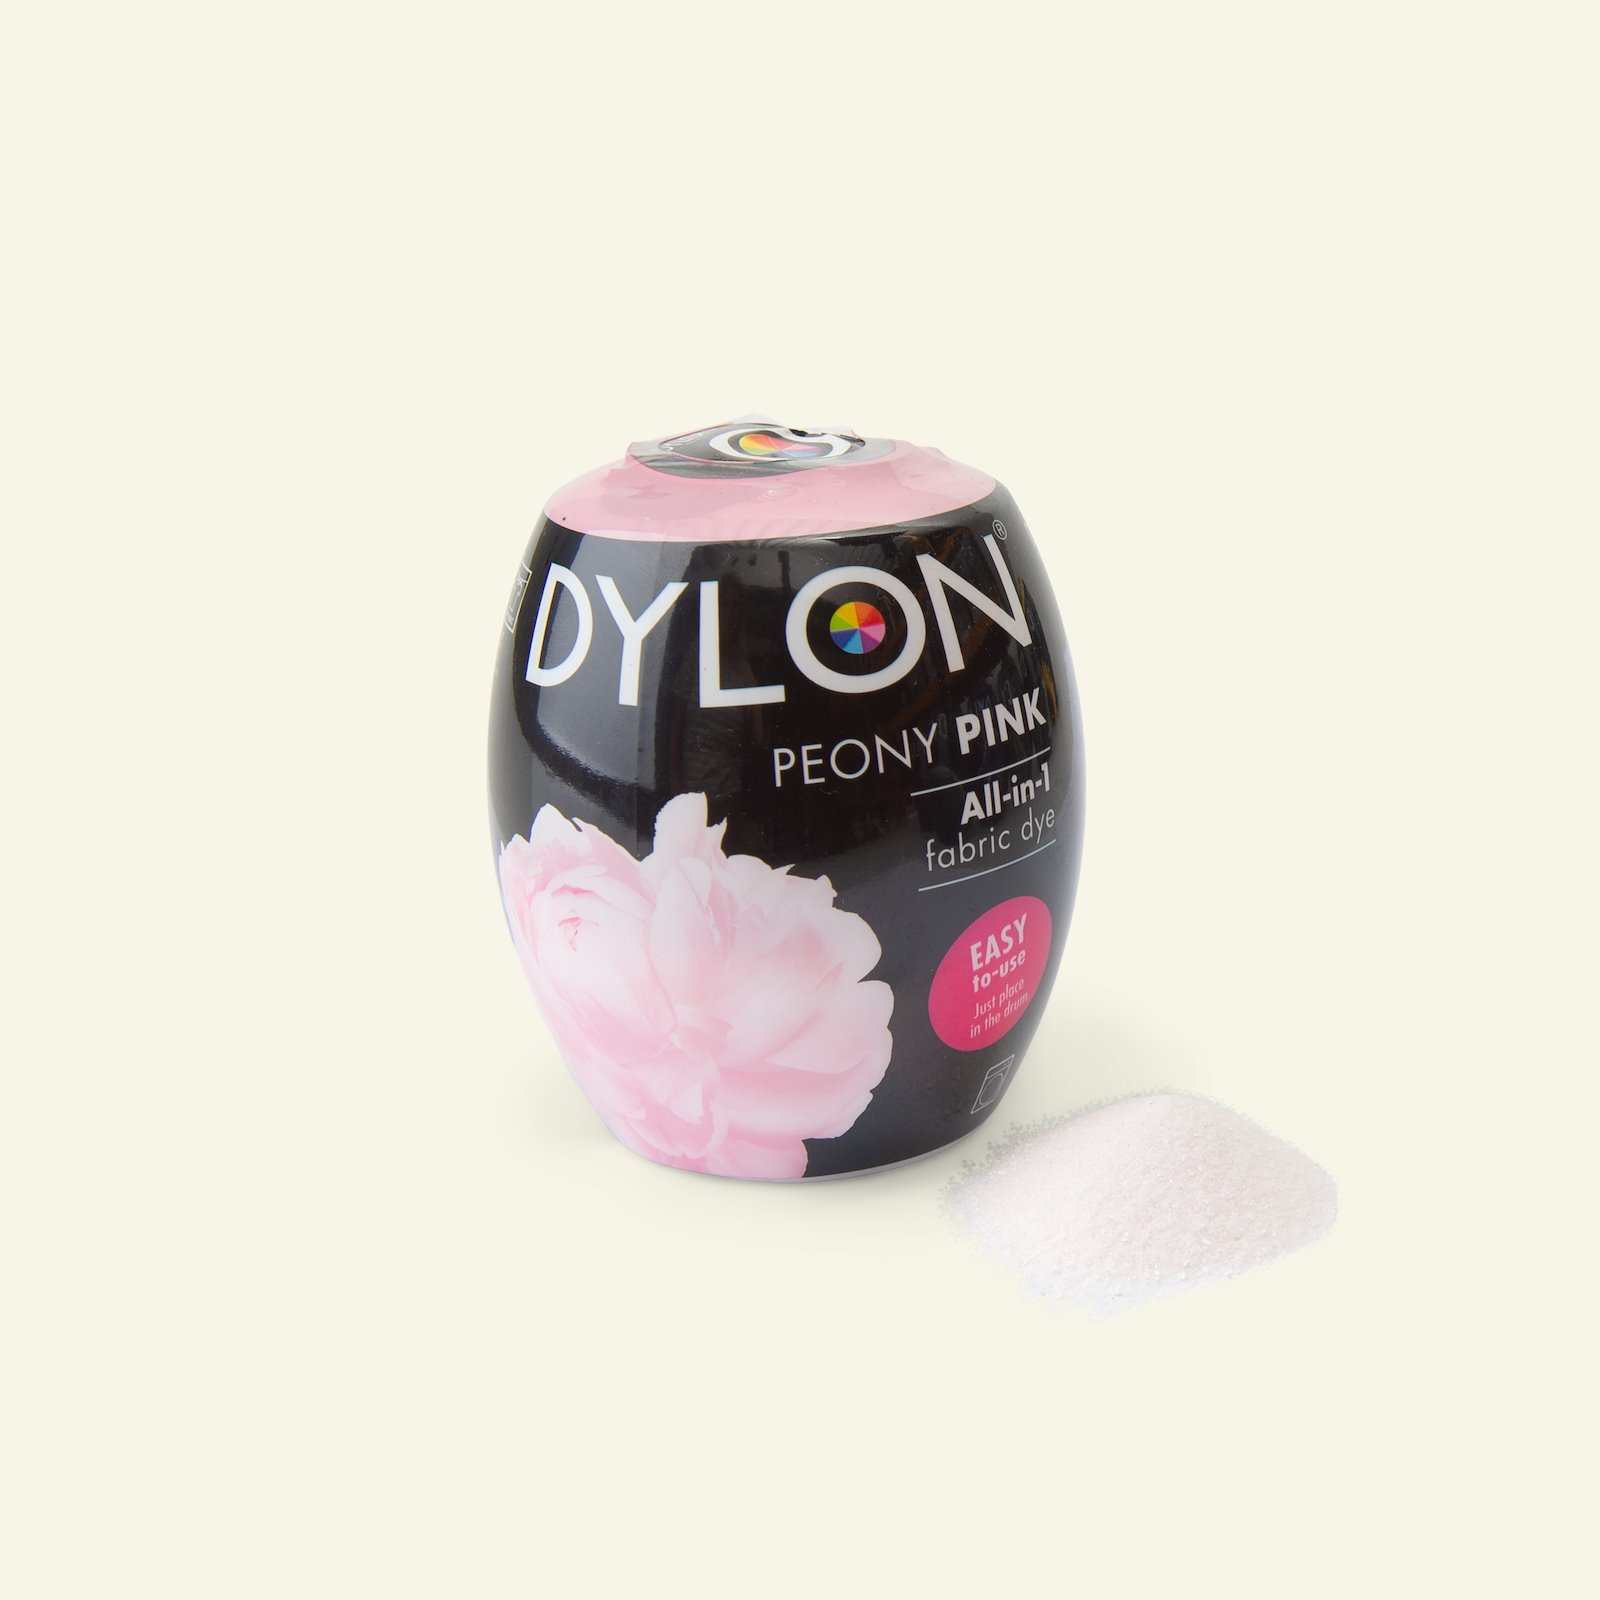 Dylon fabric dye for machine pink 29702_pack